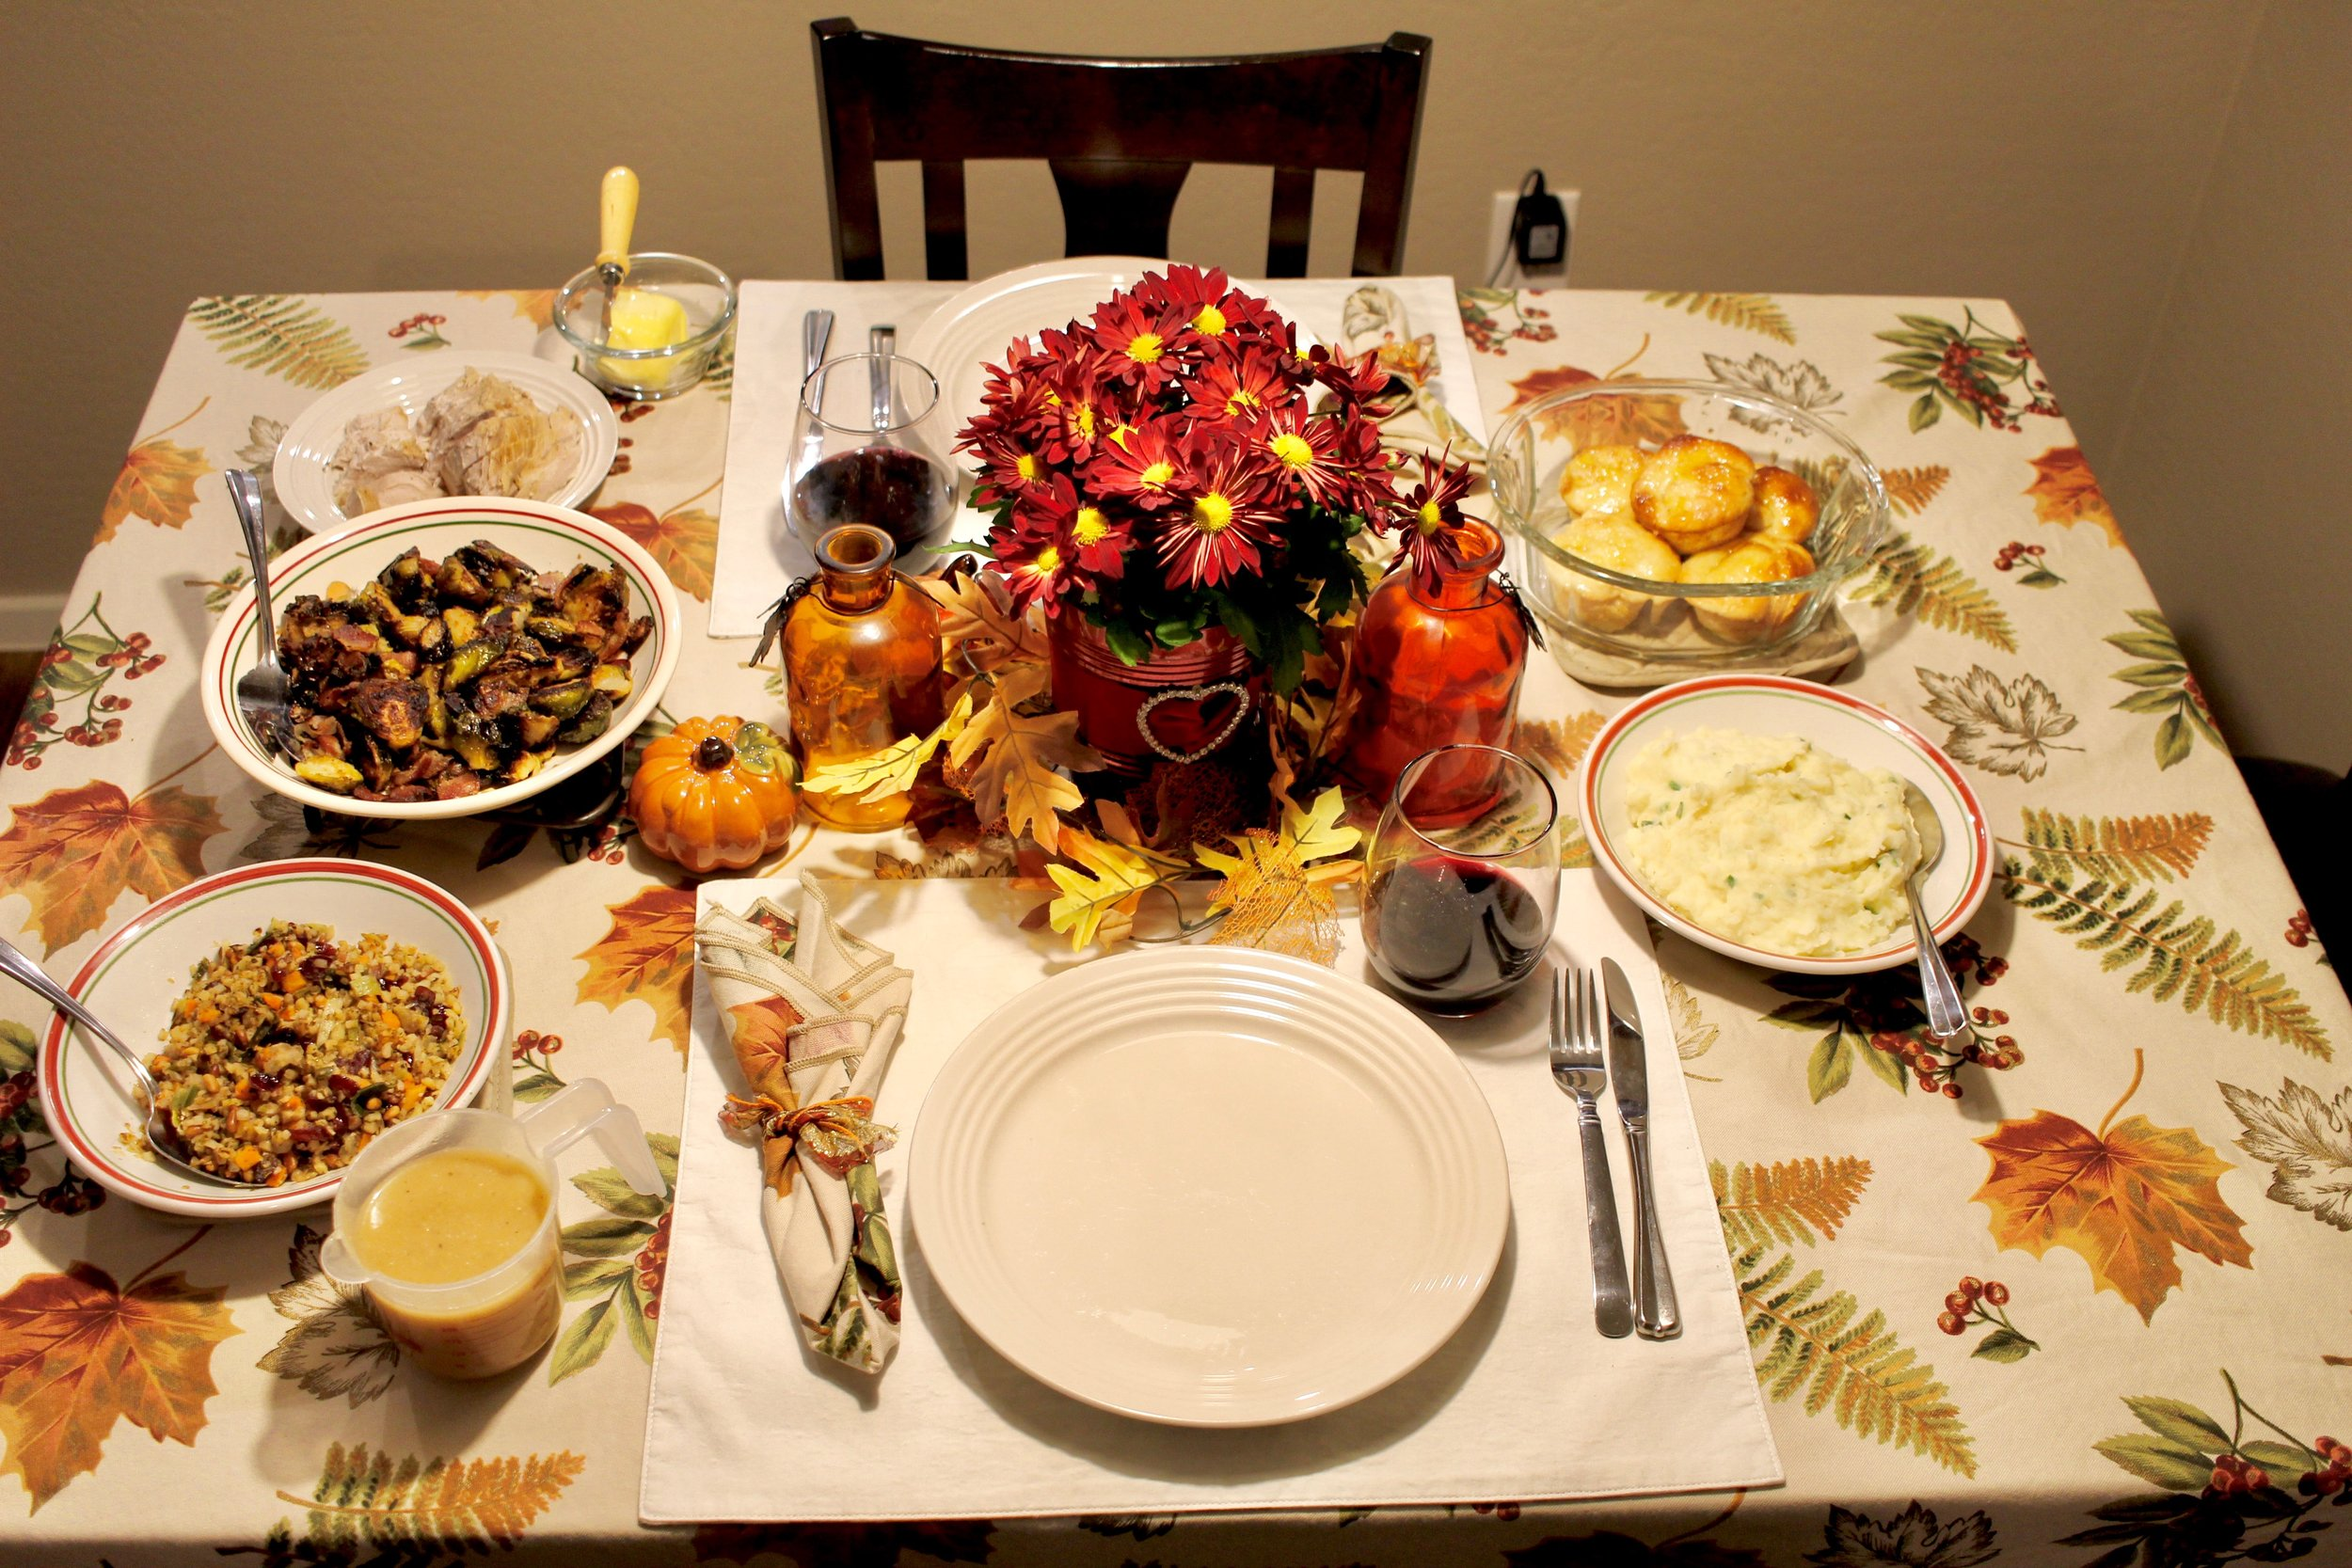 Our Thanksgiving Table Spread! Justin bought flowers on his way home from work and they looked beautiful at the center of the table.